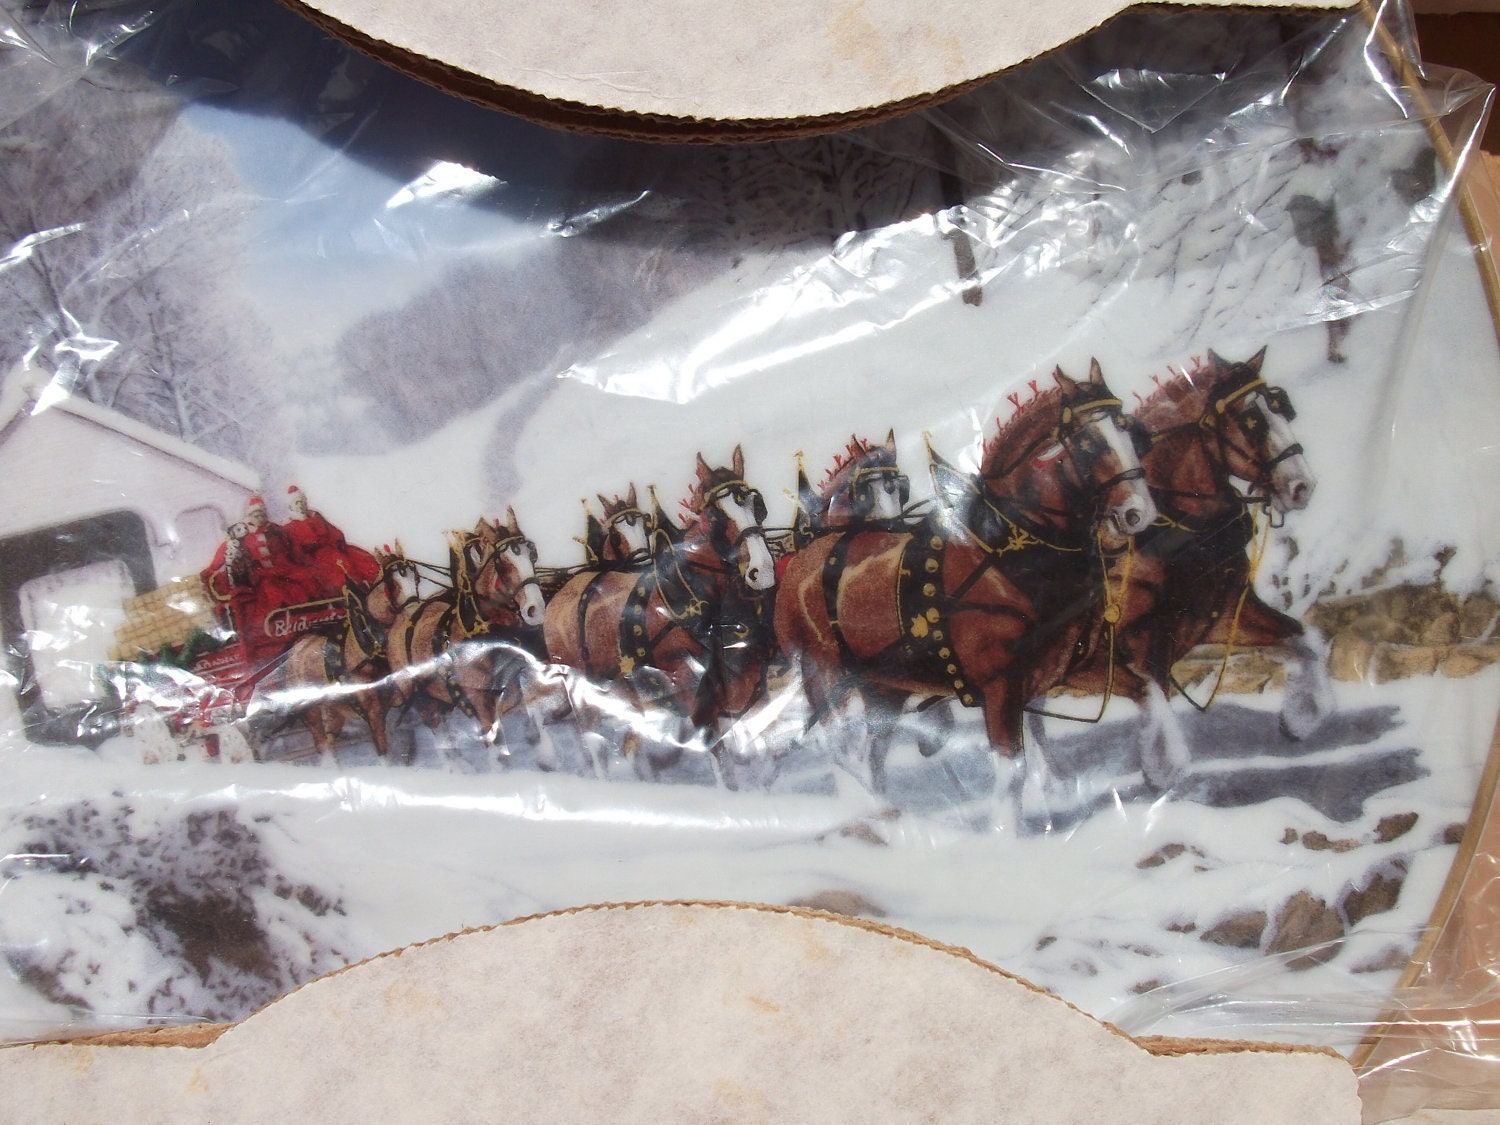 1989 budweiser clydesdales holiday plate by alookbackvintage